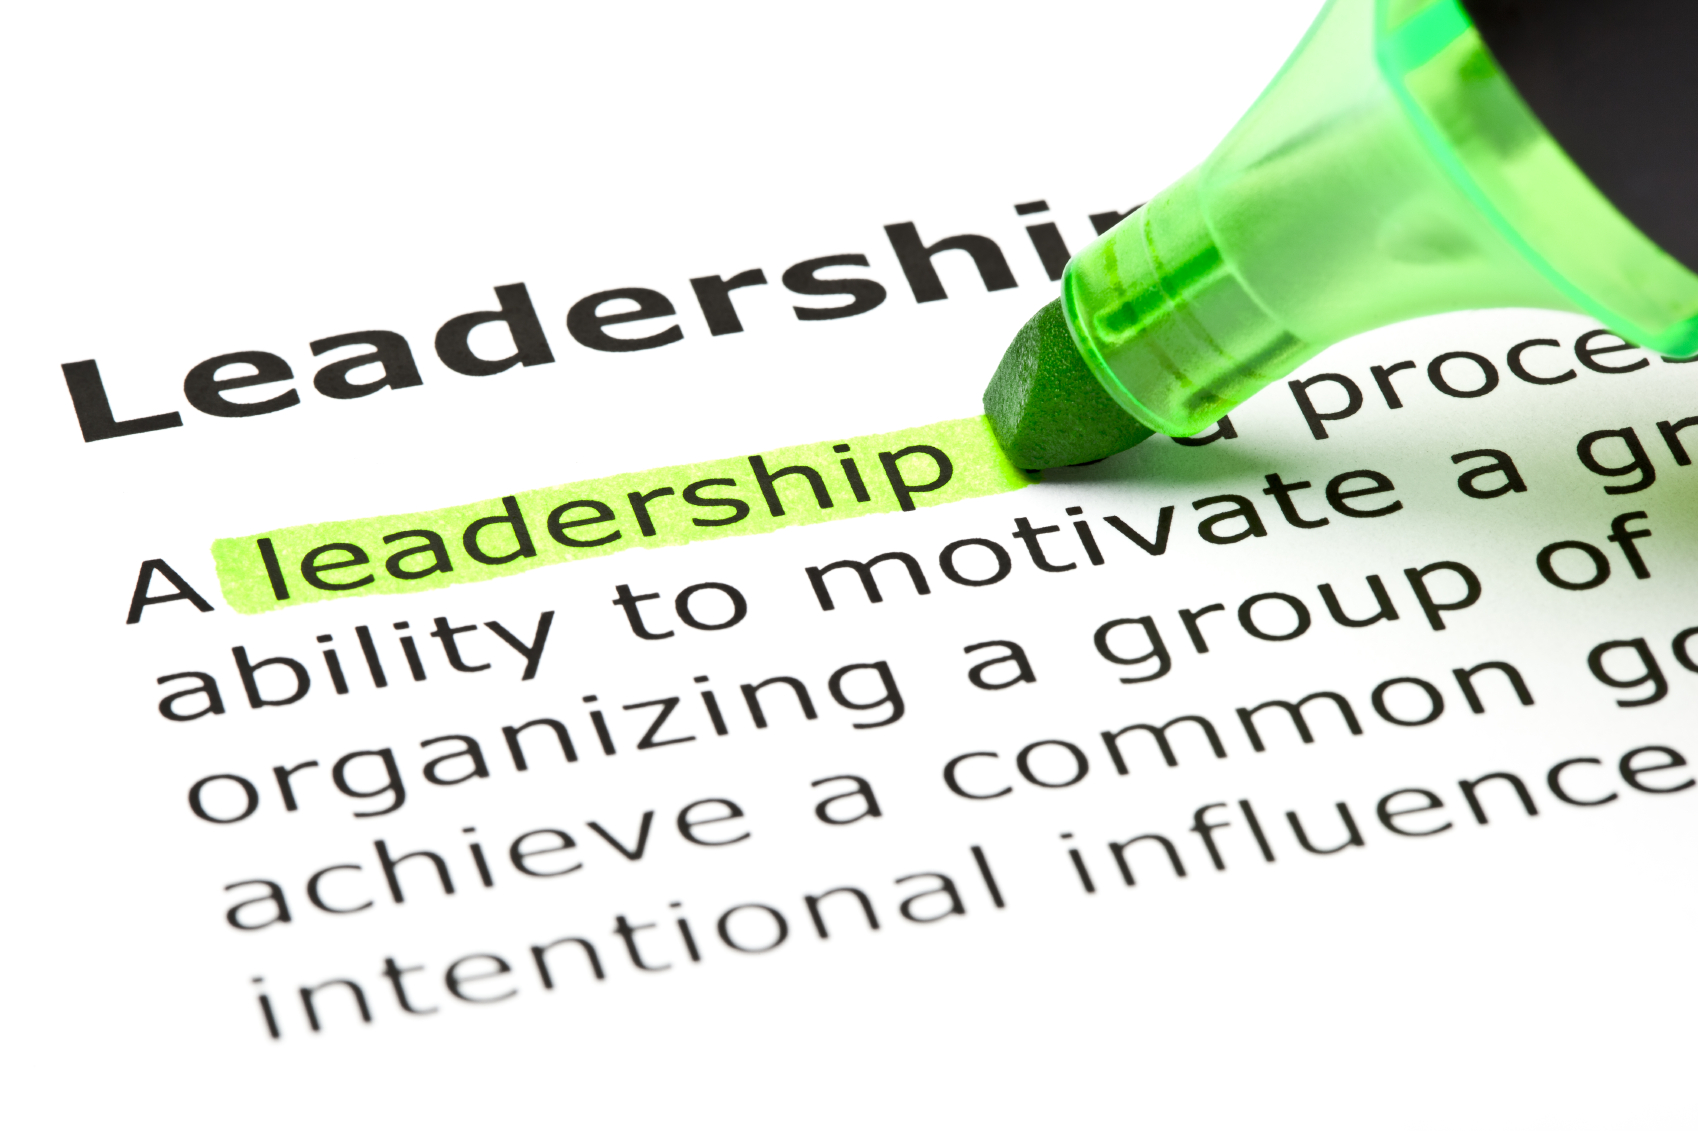 25 Inspirational Quotes On Leadership